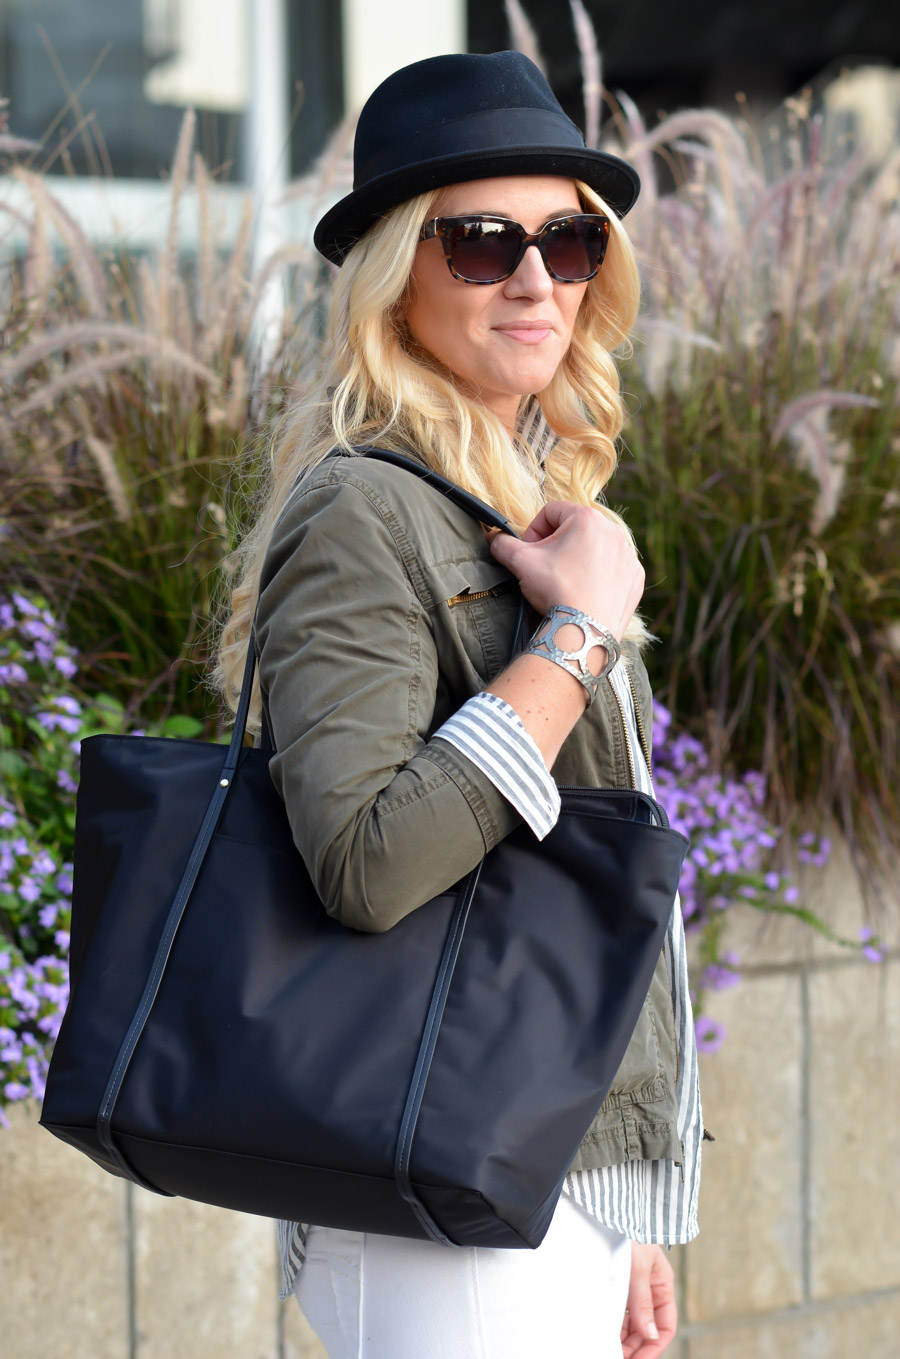 Best Travel Bags for Stylish Women. Chic Work Laptop Tote- Samsonite Lyssa Tote Review